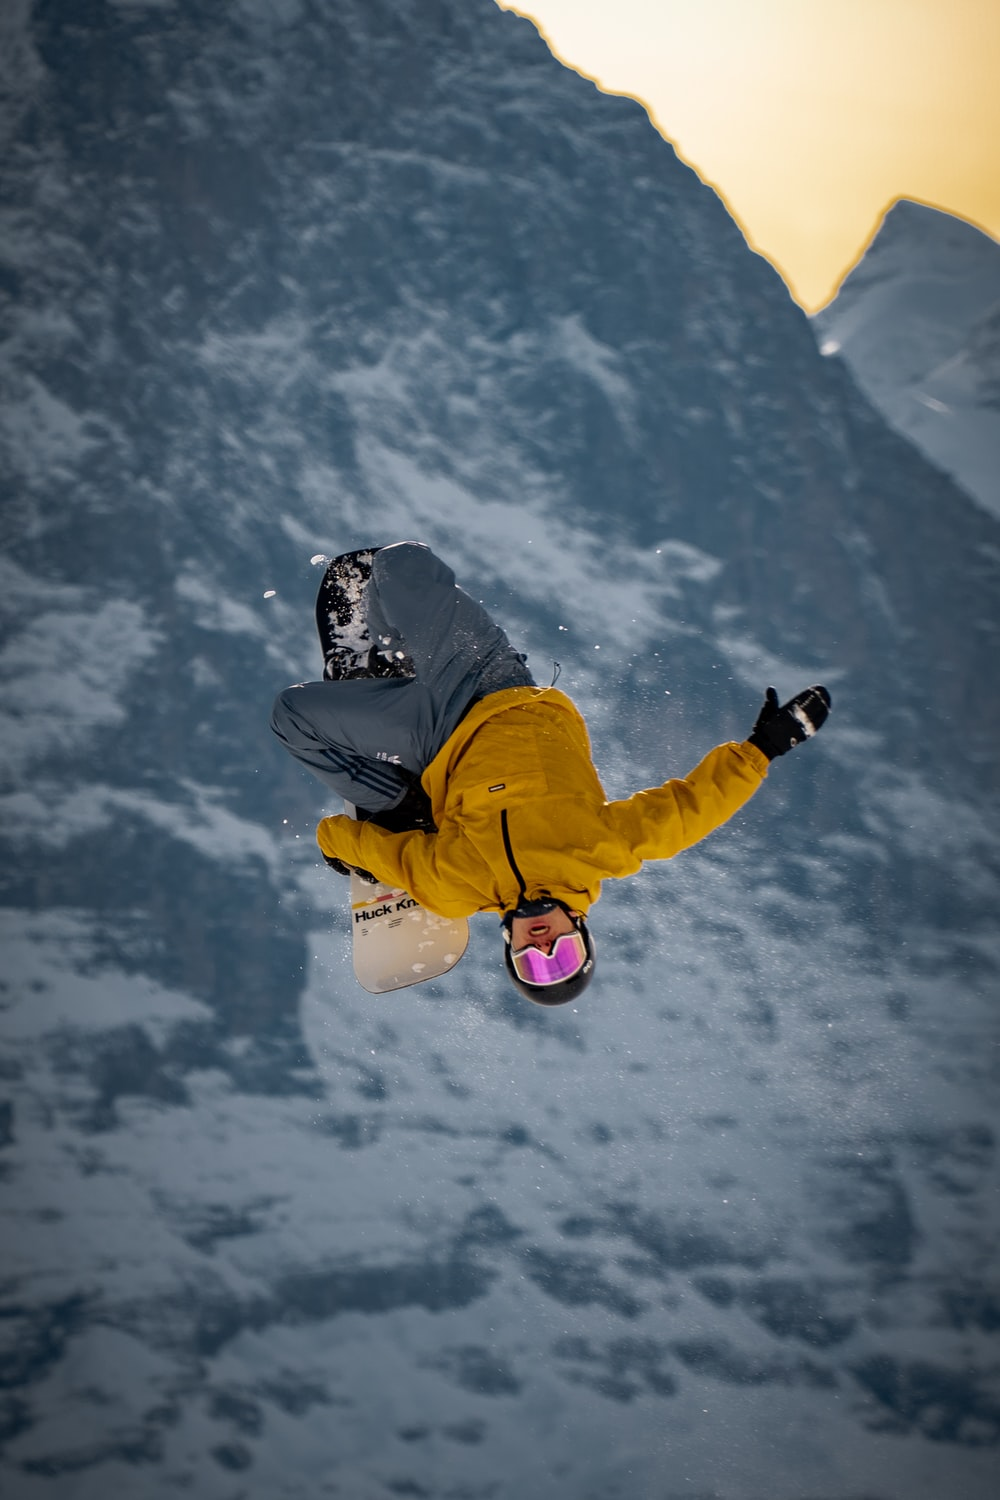 man in blue jacket and yellow pants wearing black helmet jumping on snow covered mountain during